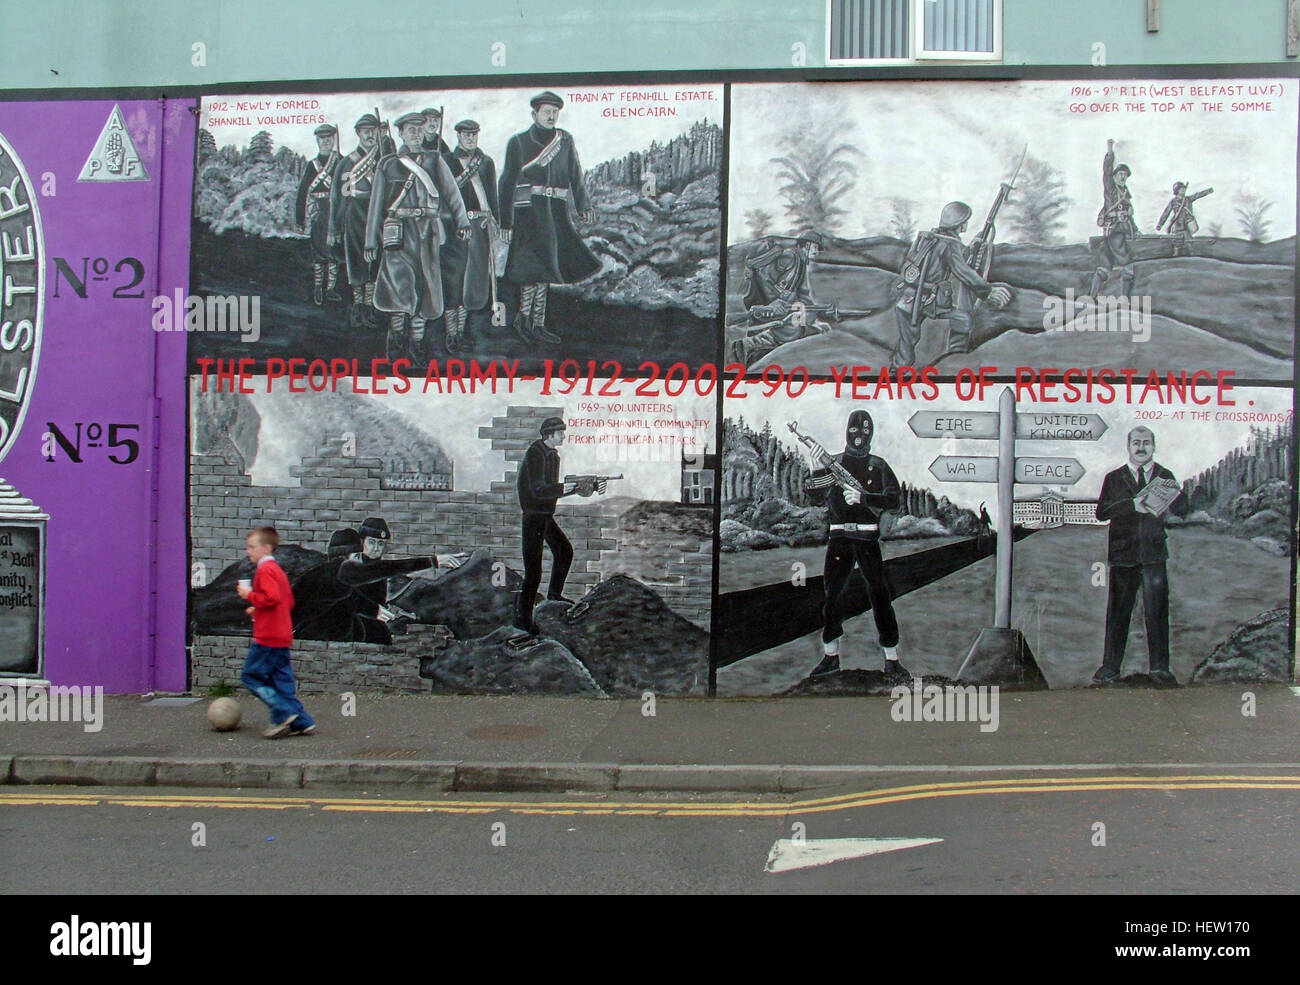 Shankill Road Mural -90 years of resistance, West Belfast, Northern Ireland, UK, with boy kicking football Stock Photo